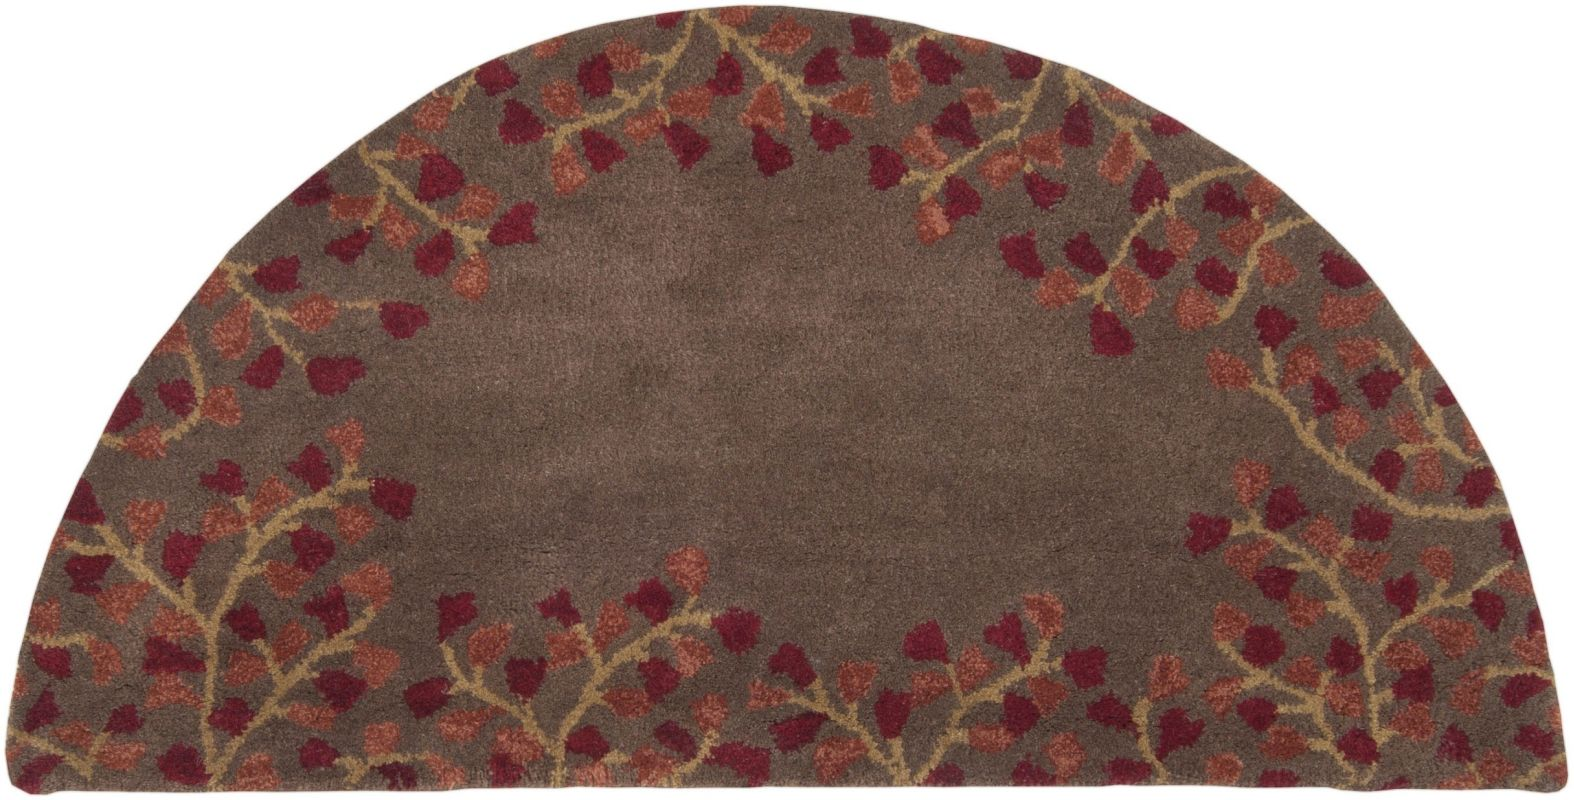 Surya ATH-5003 Athena Hand Tufted Wool Rug Red 8 x 11 Home Decor Rugs Sale $813.60 ITEM: bci2658135 ID#:ATH5003-811 UPC: 764262276060 :